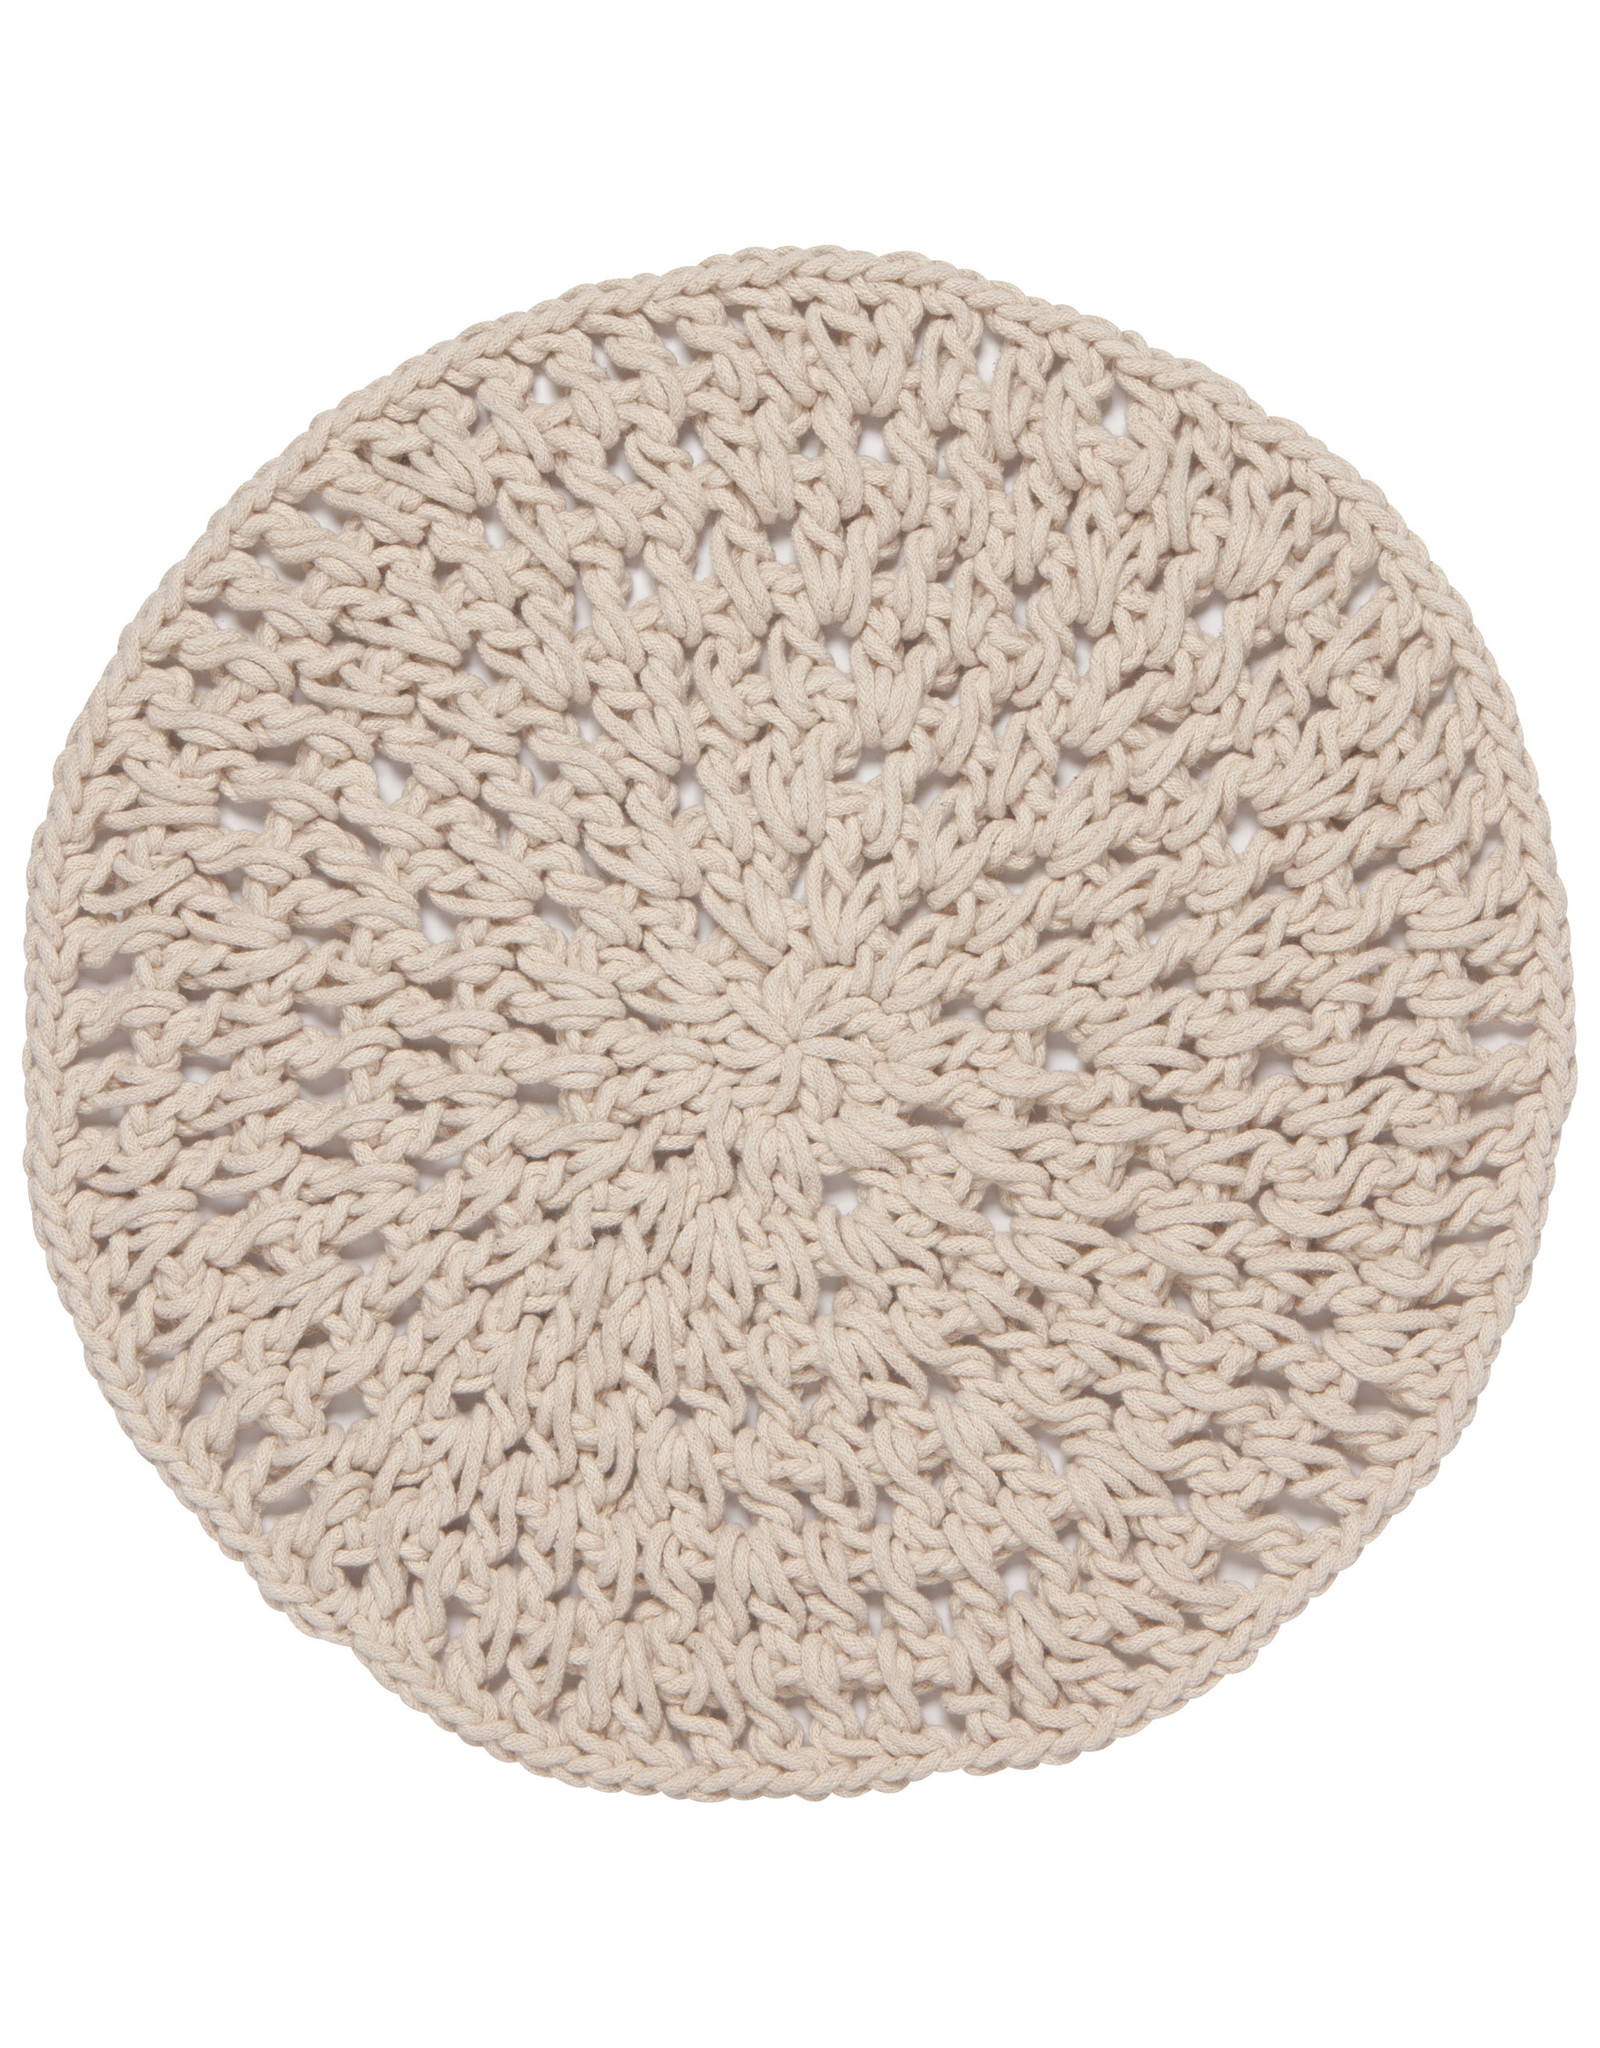 Danica Placemat Knotted Natural